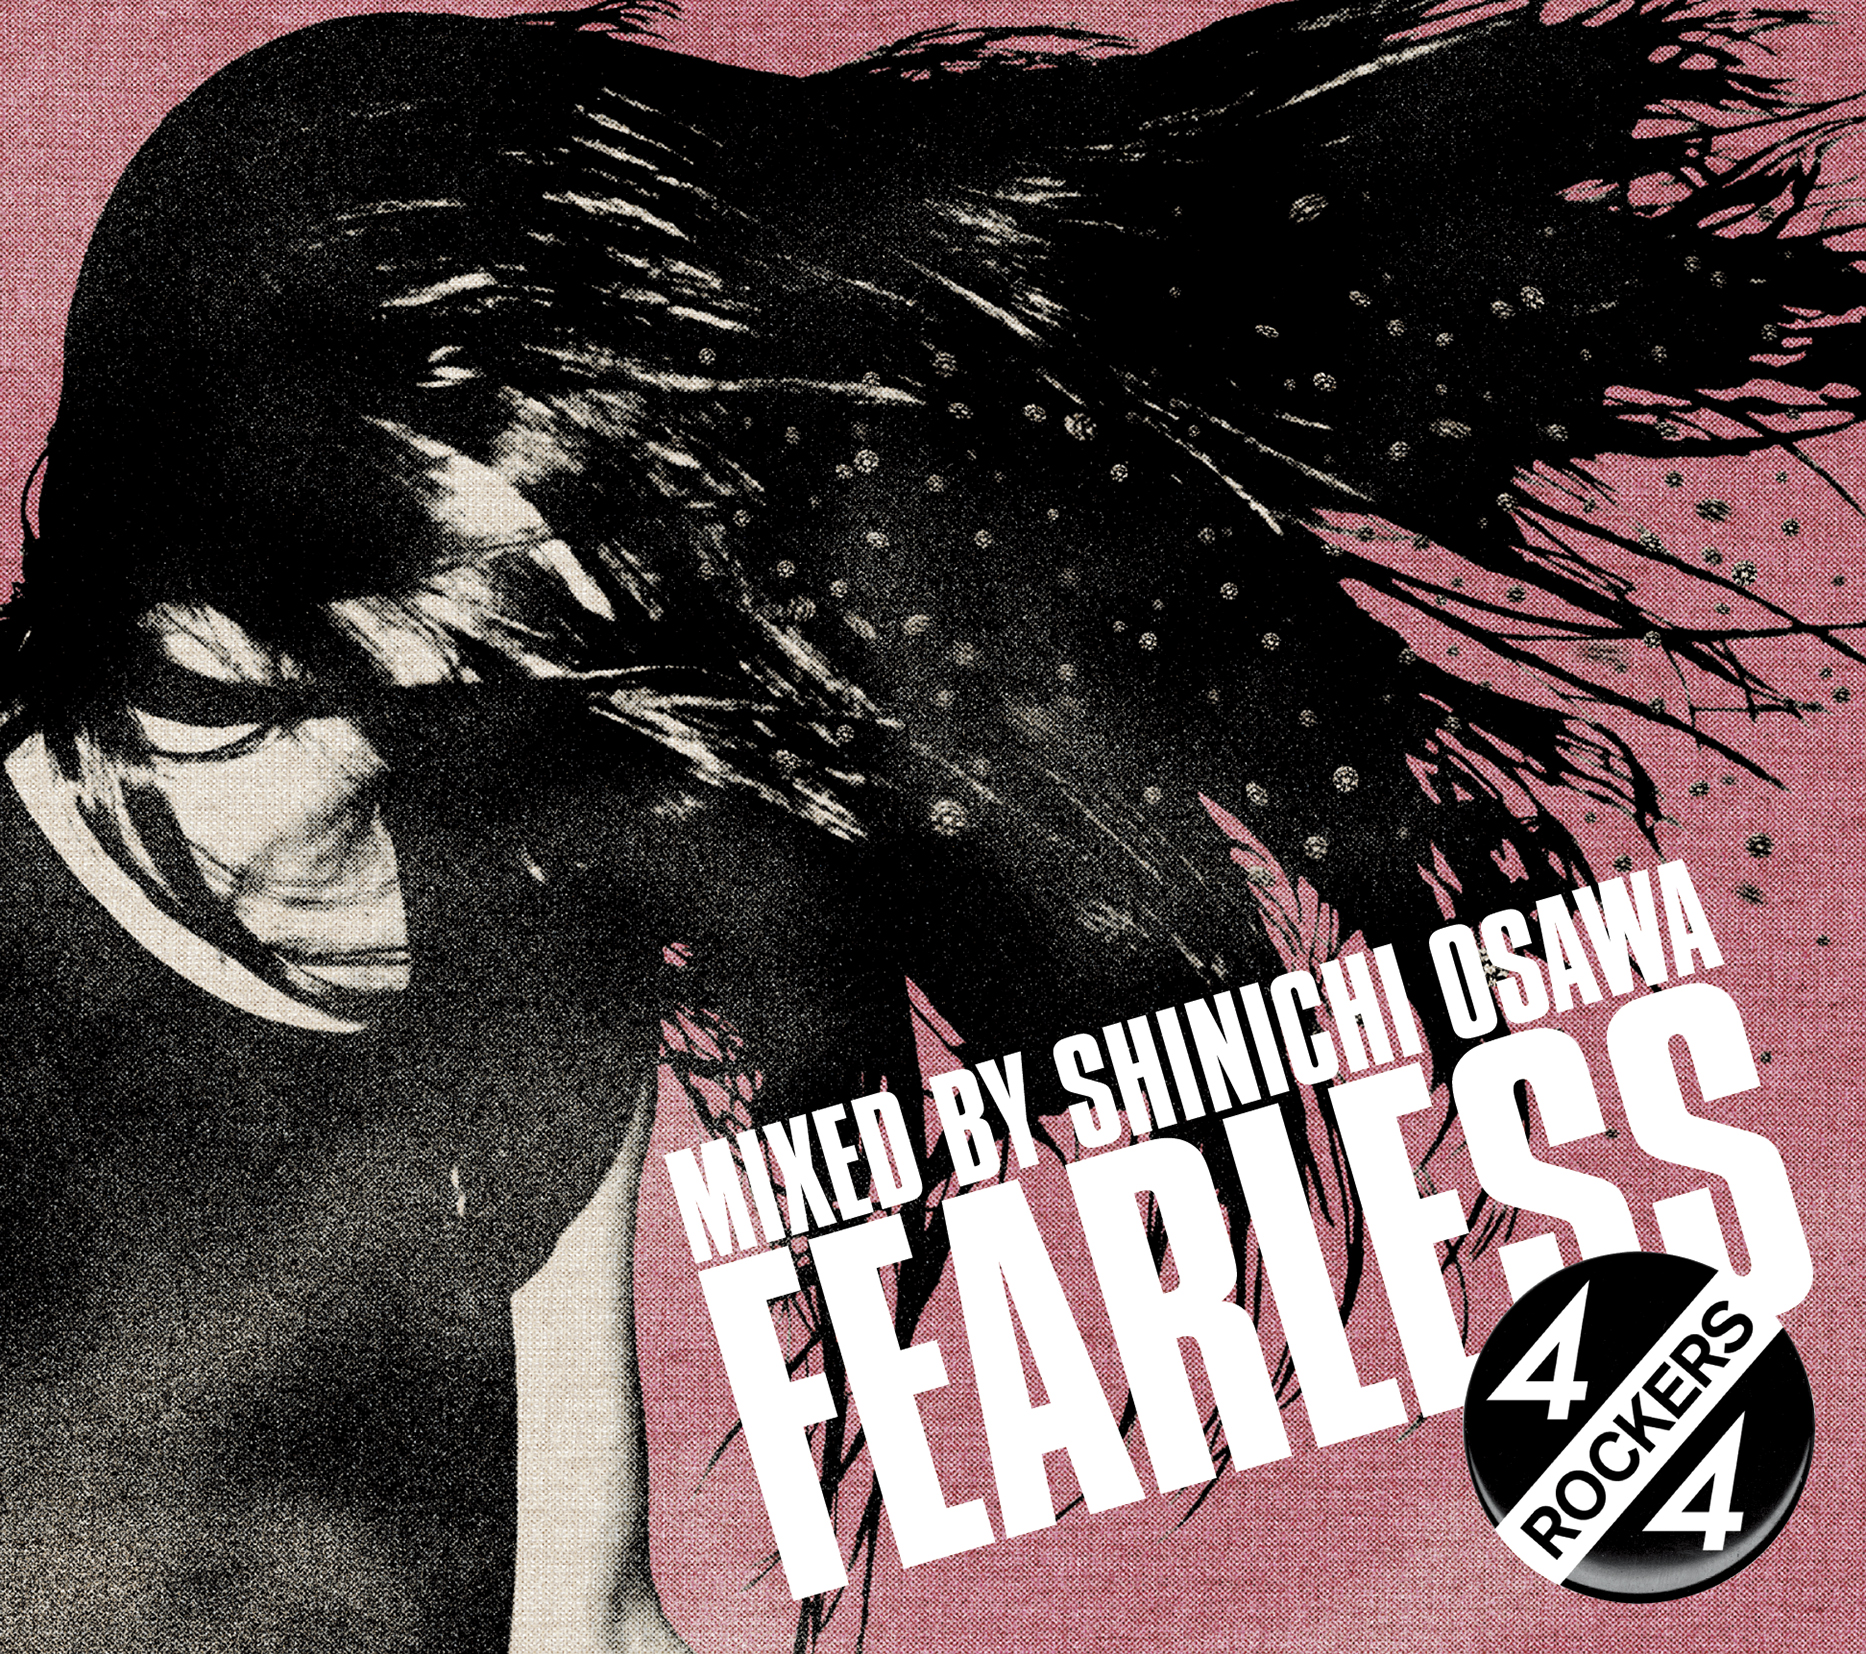 V.A.「FEARLESS 4/4 ROCKERS Mixed by Shinichi Osawa」